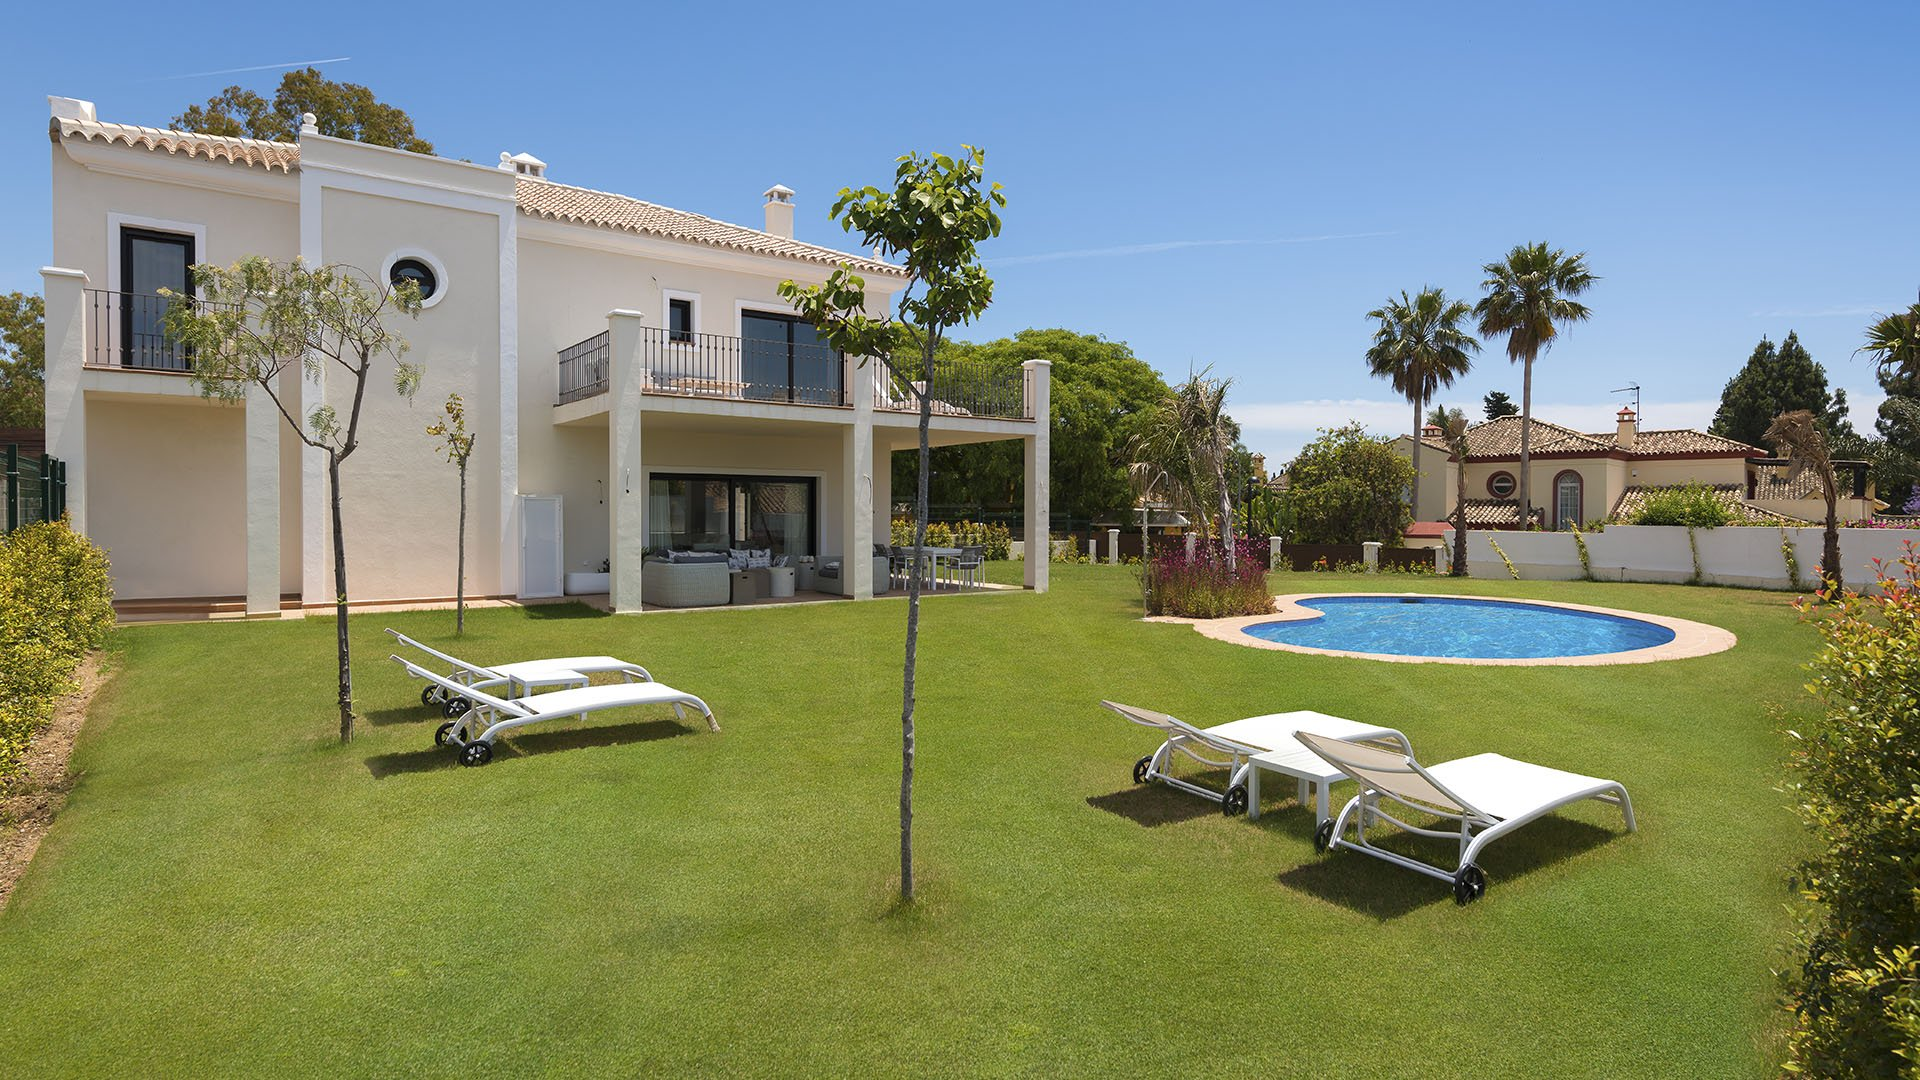 Oasis de Quadalmina Baja: Exclusive villa next to the glamorous Puerto Banús